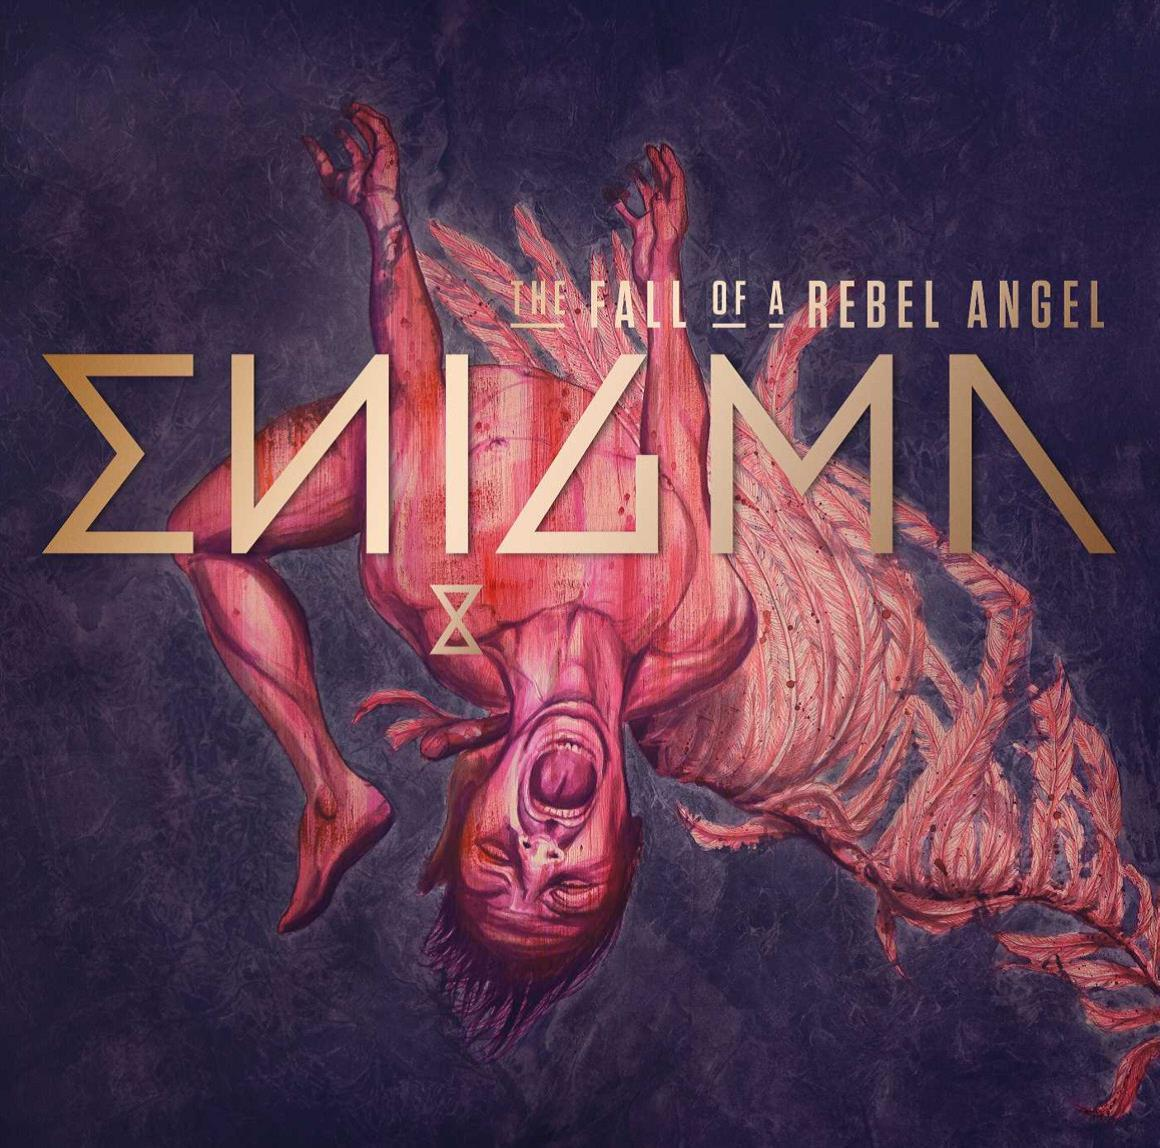 ENIGMA - THE FALL OF A REBEL ANGEL - ENIGMA - CD -